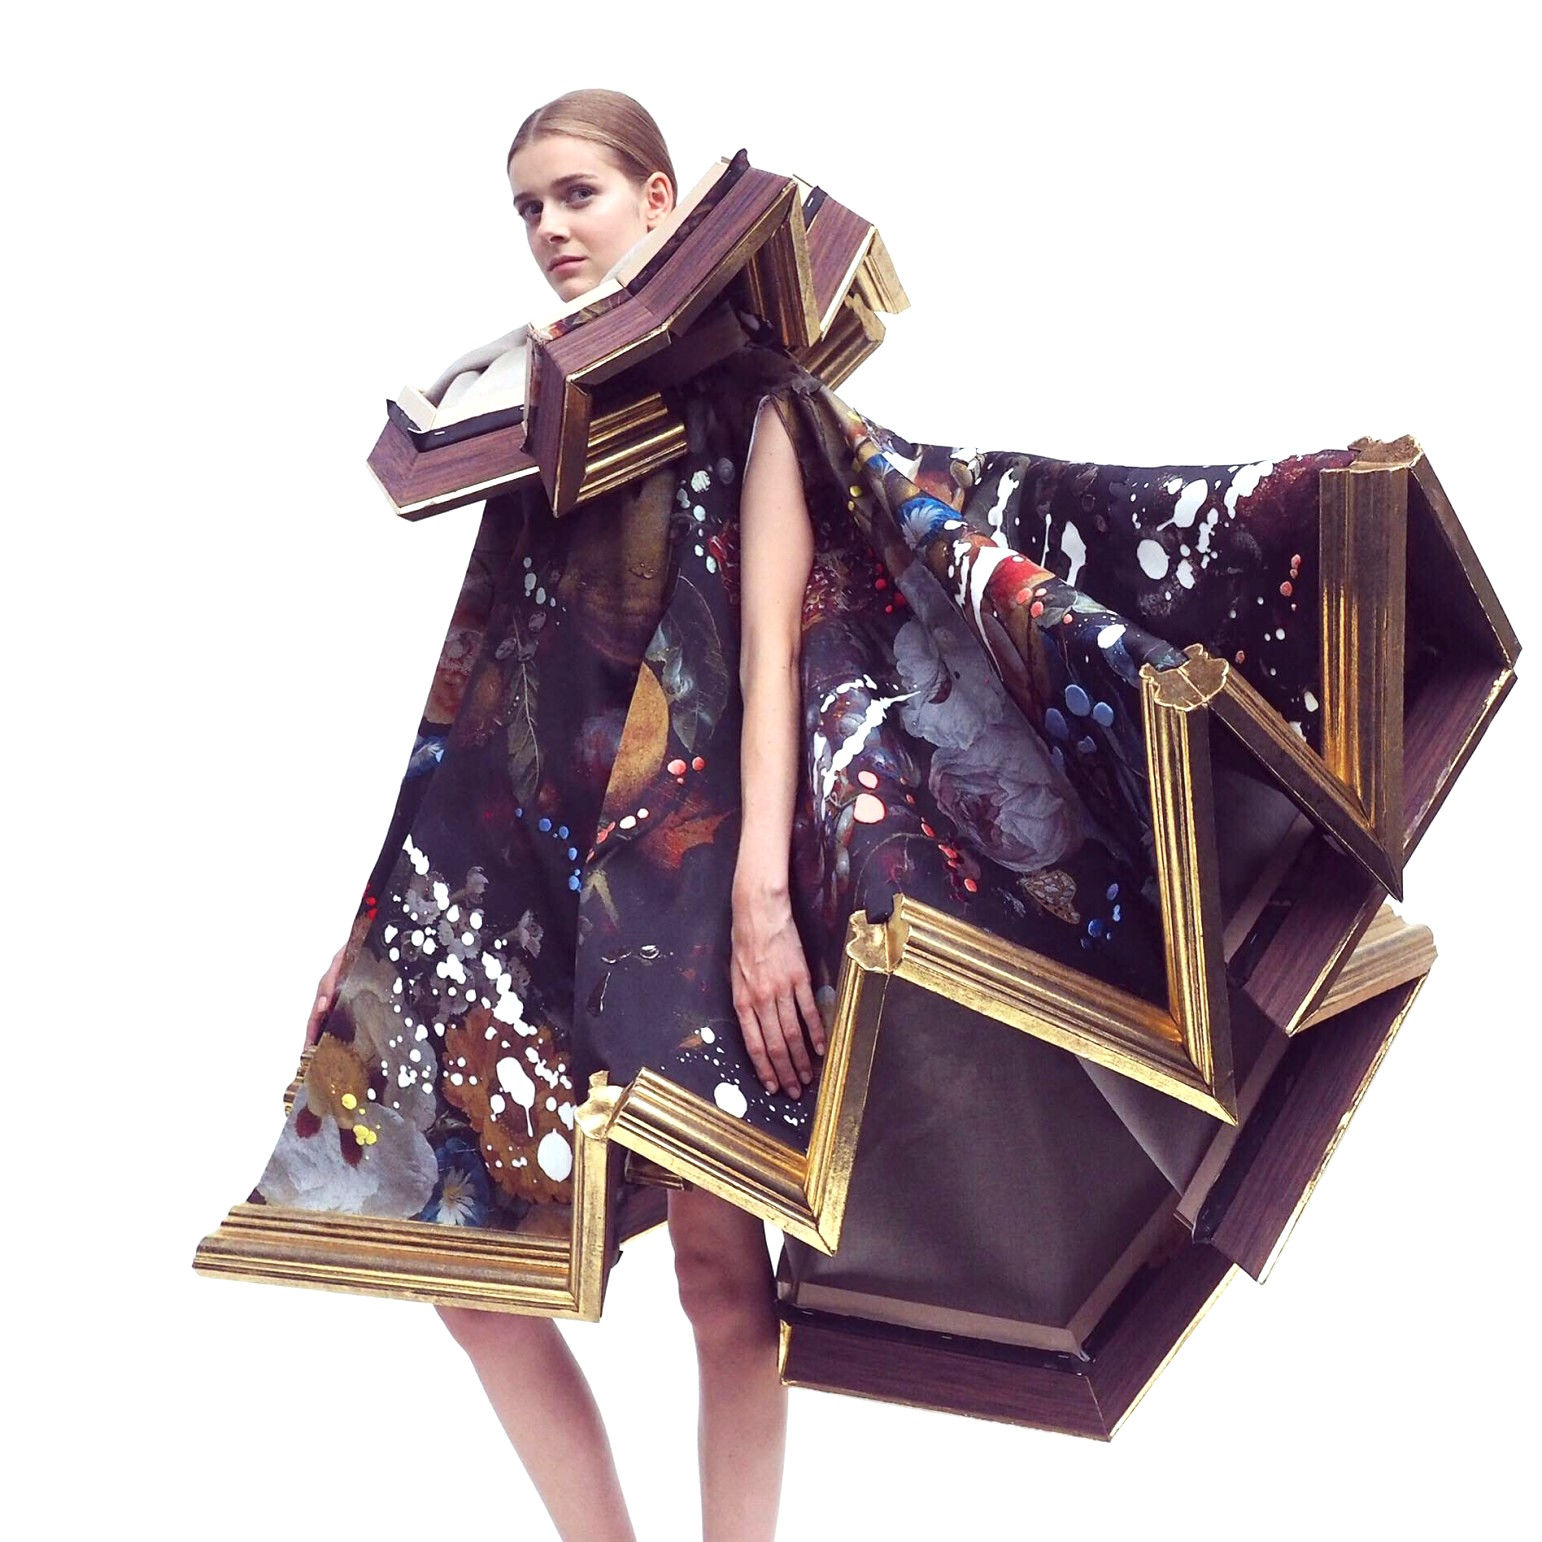 Viktor Amp Rolf Fashion Artists Exhibition At National